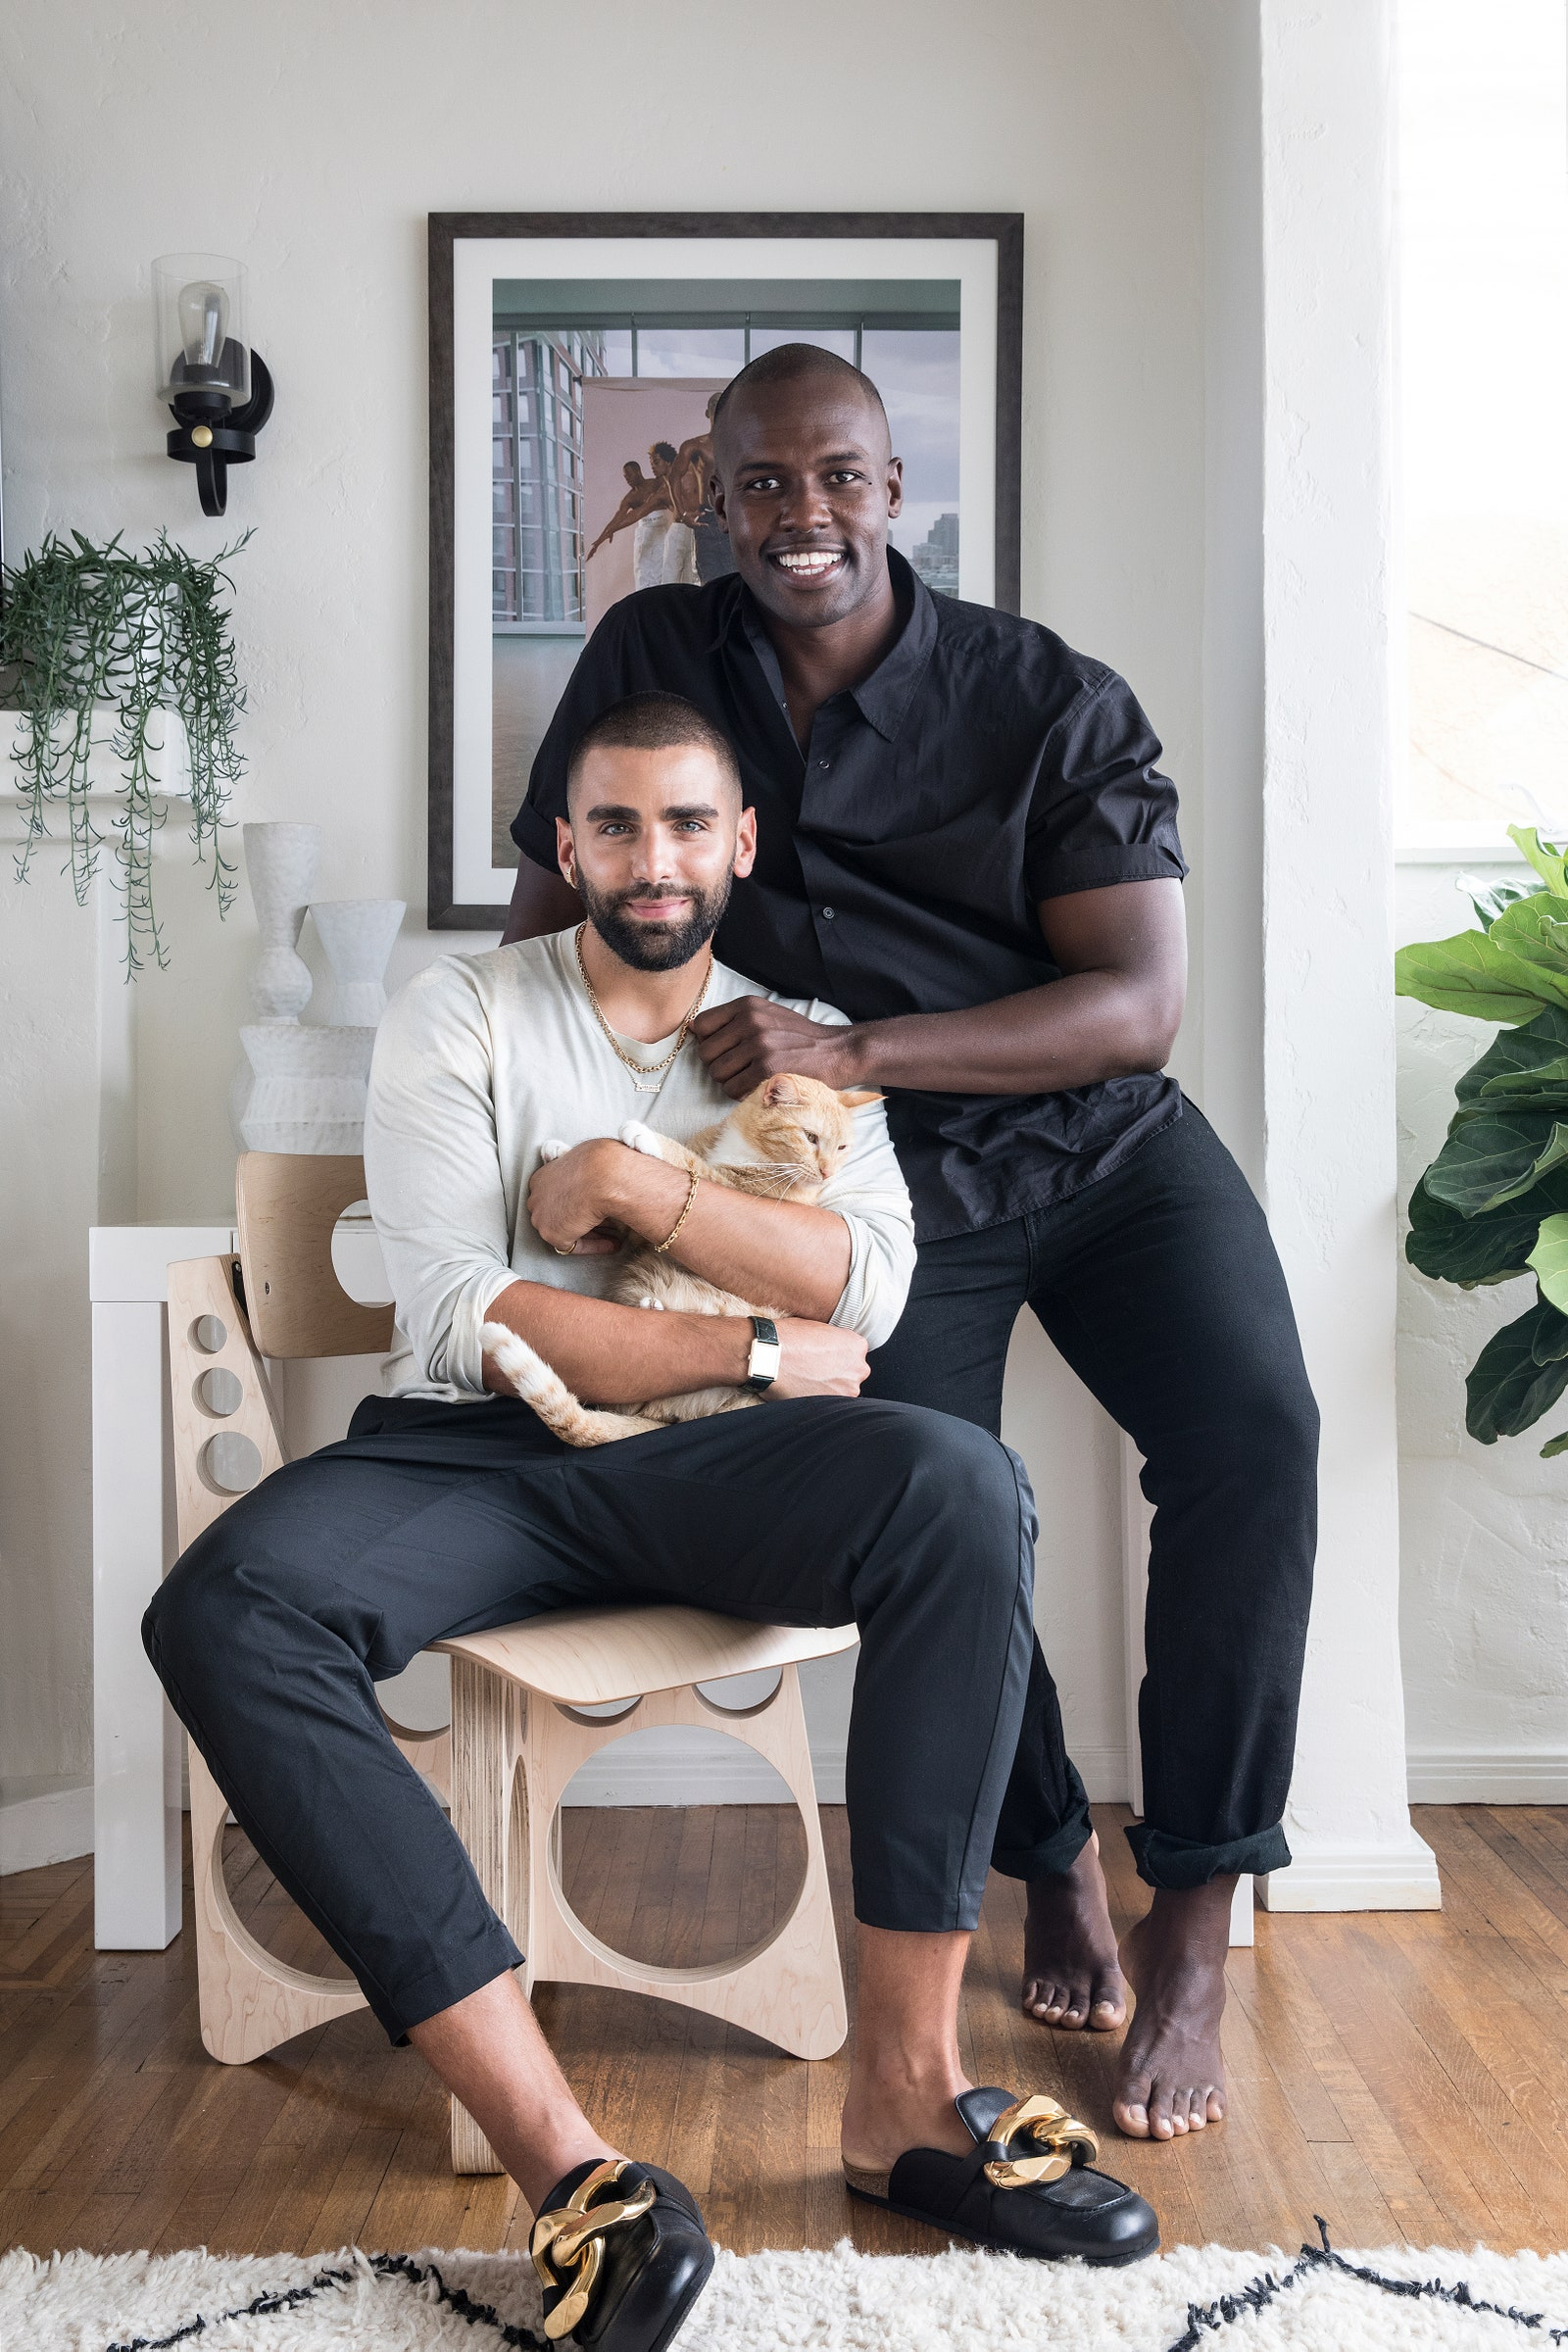 Newly minted Angelenos Phillip (left) and Darien pose with their cat.